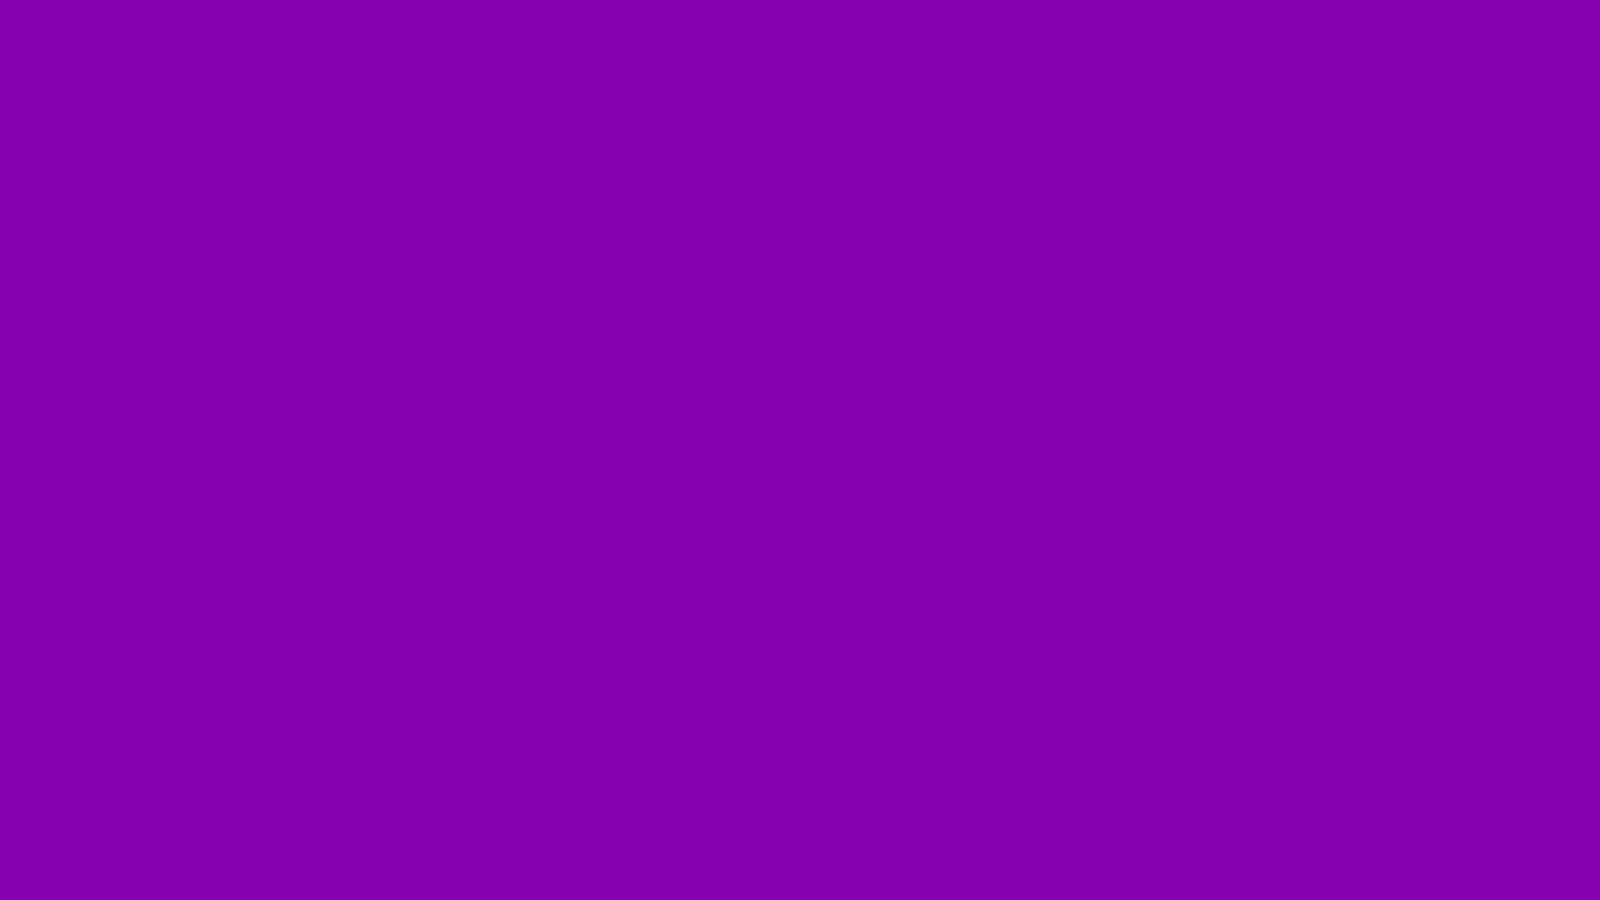 1600x900 Violet RYB Solid Color Background